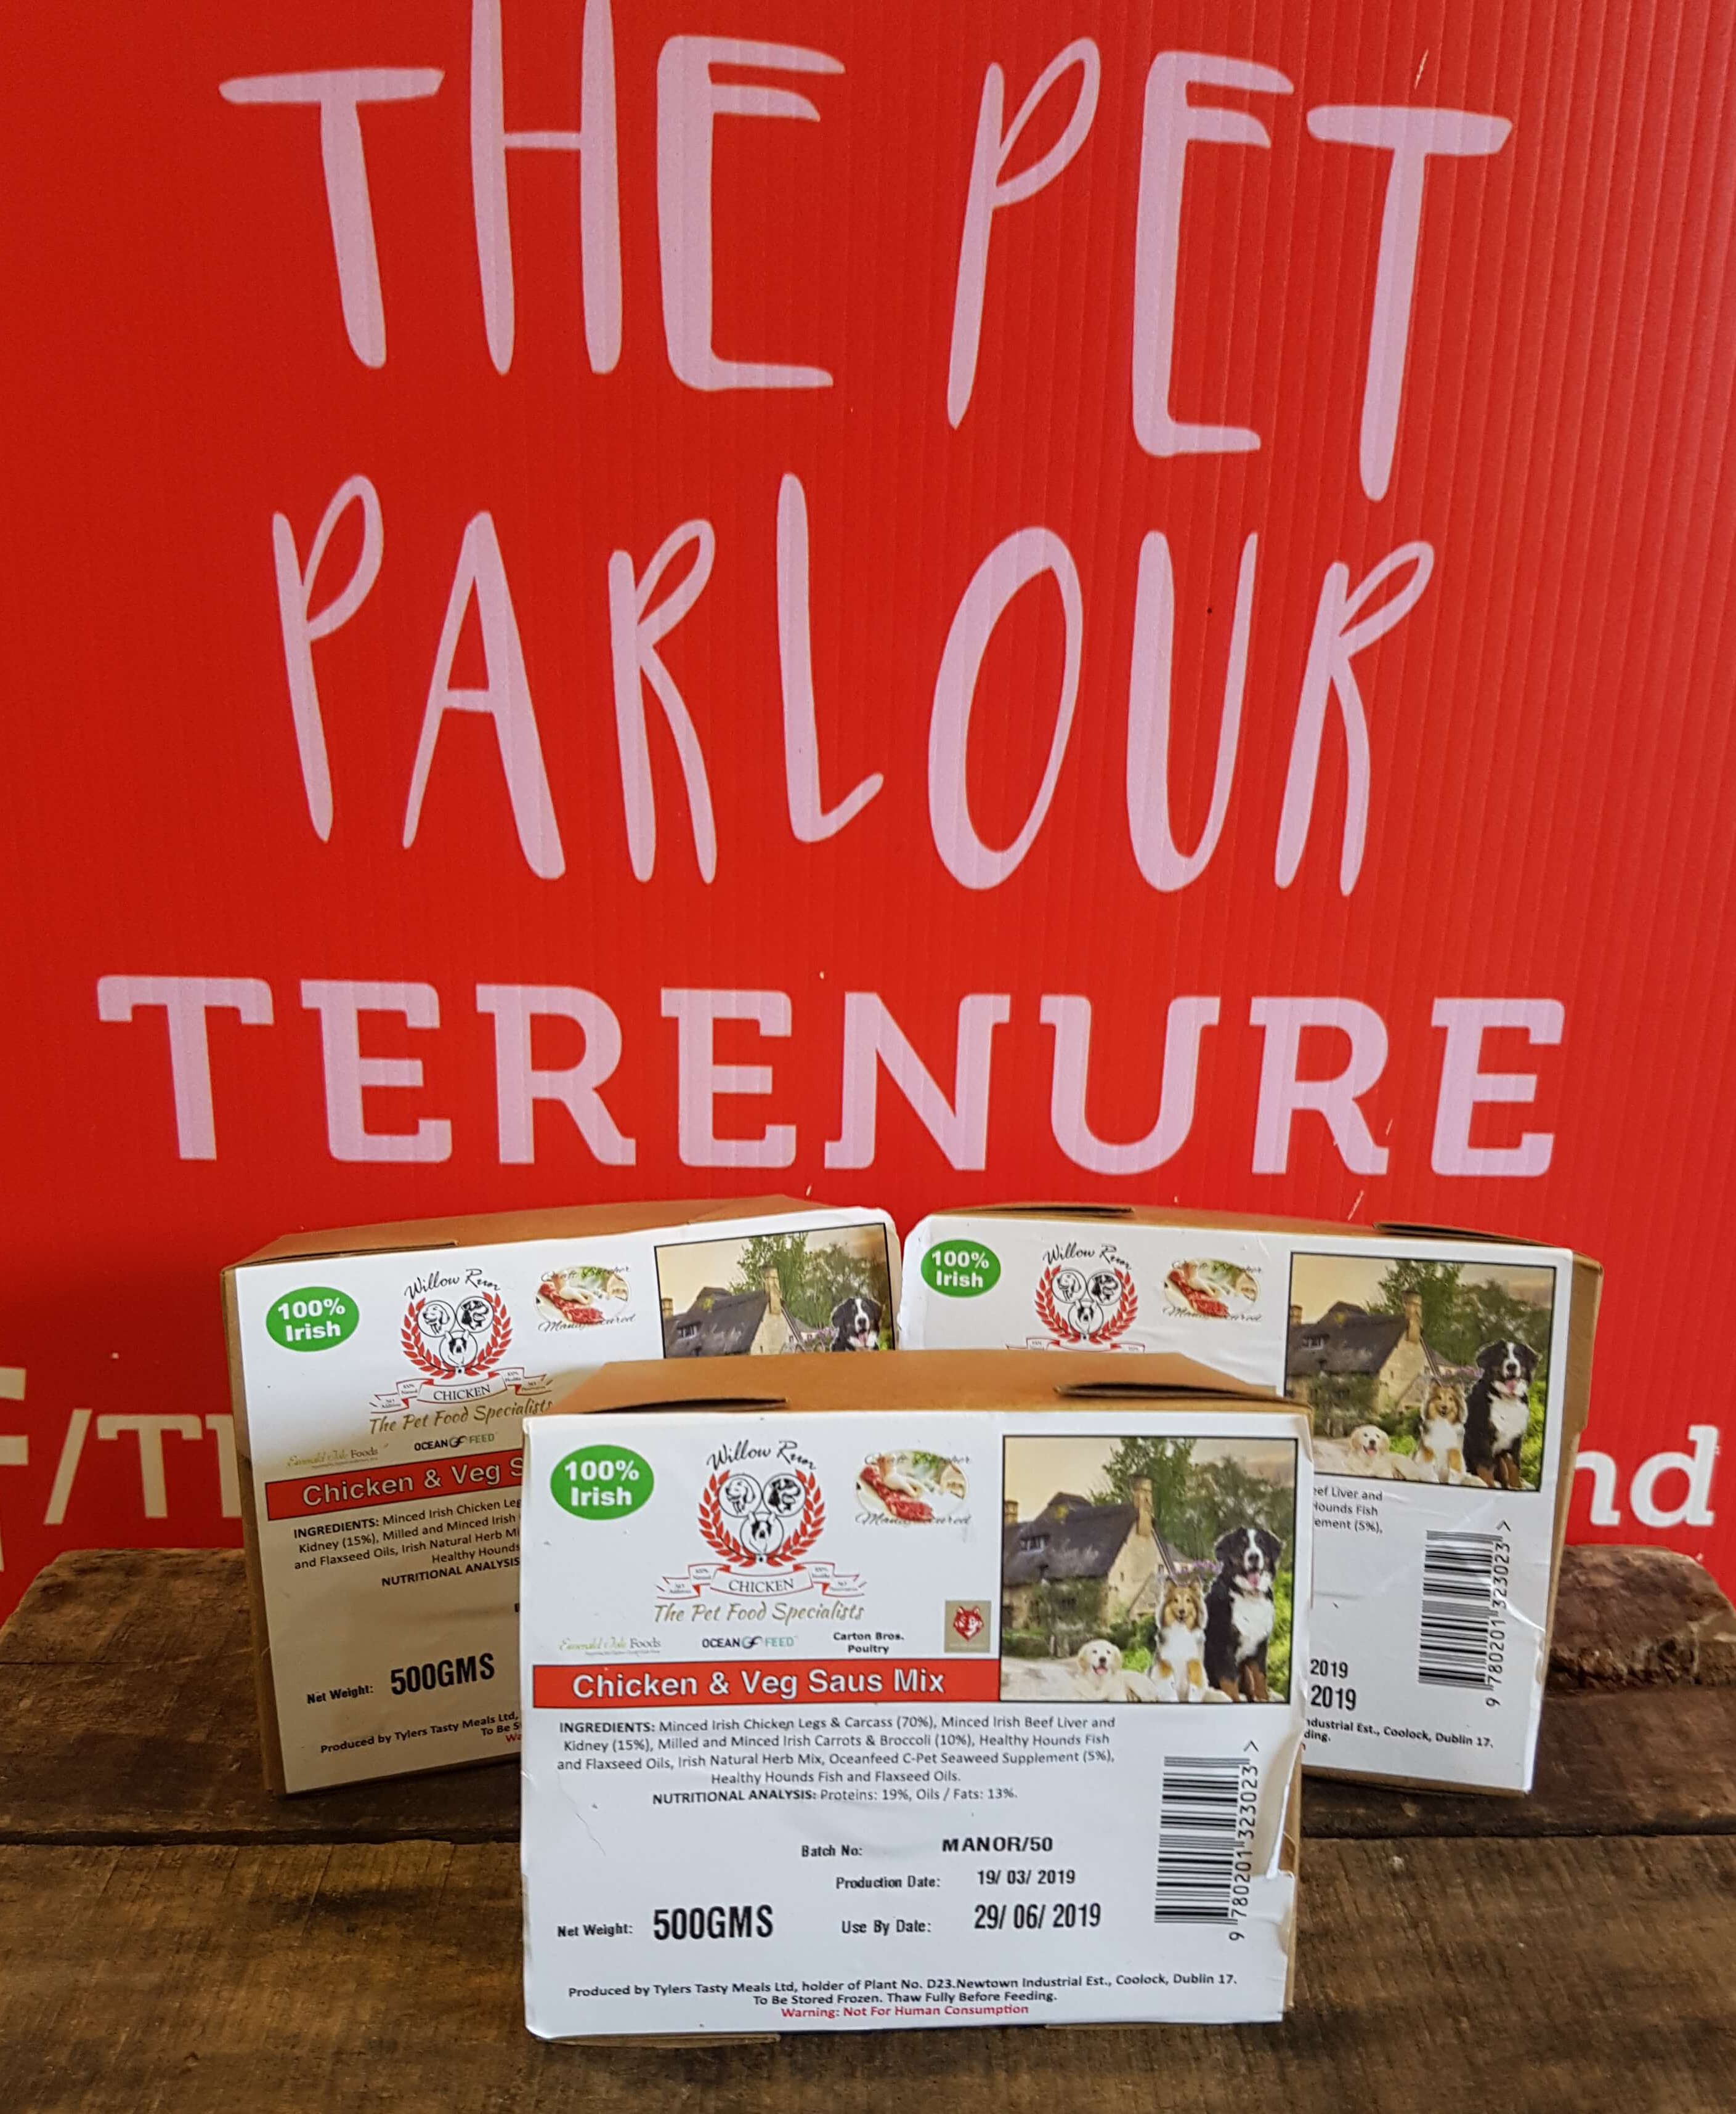 Approved Raw Chicken & Veg Sausages 500g, Raw Dog Food, Approved Raw, The Pet Parlour Terenure - The Pet Parlour Terenure Dublin